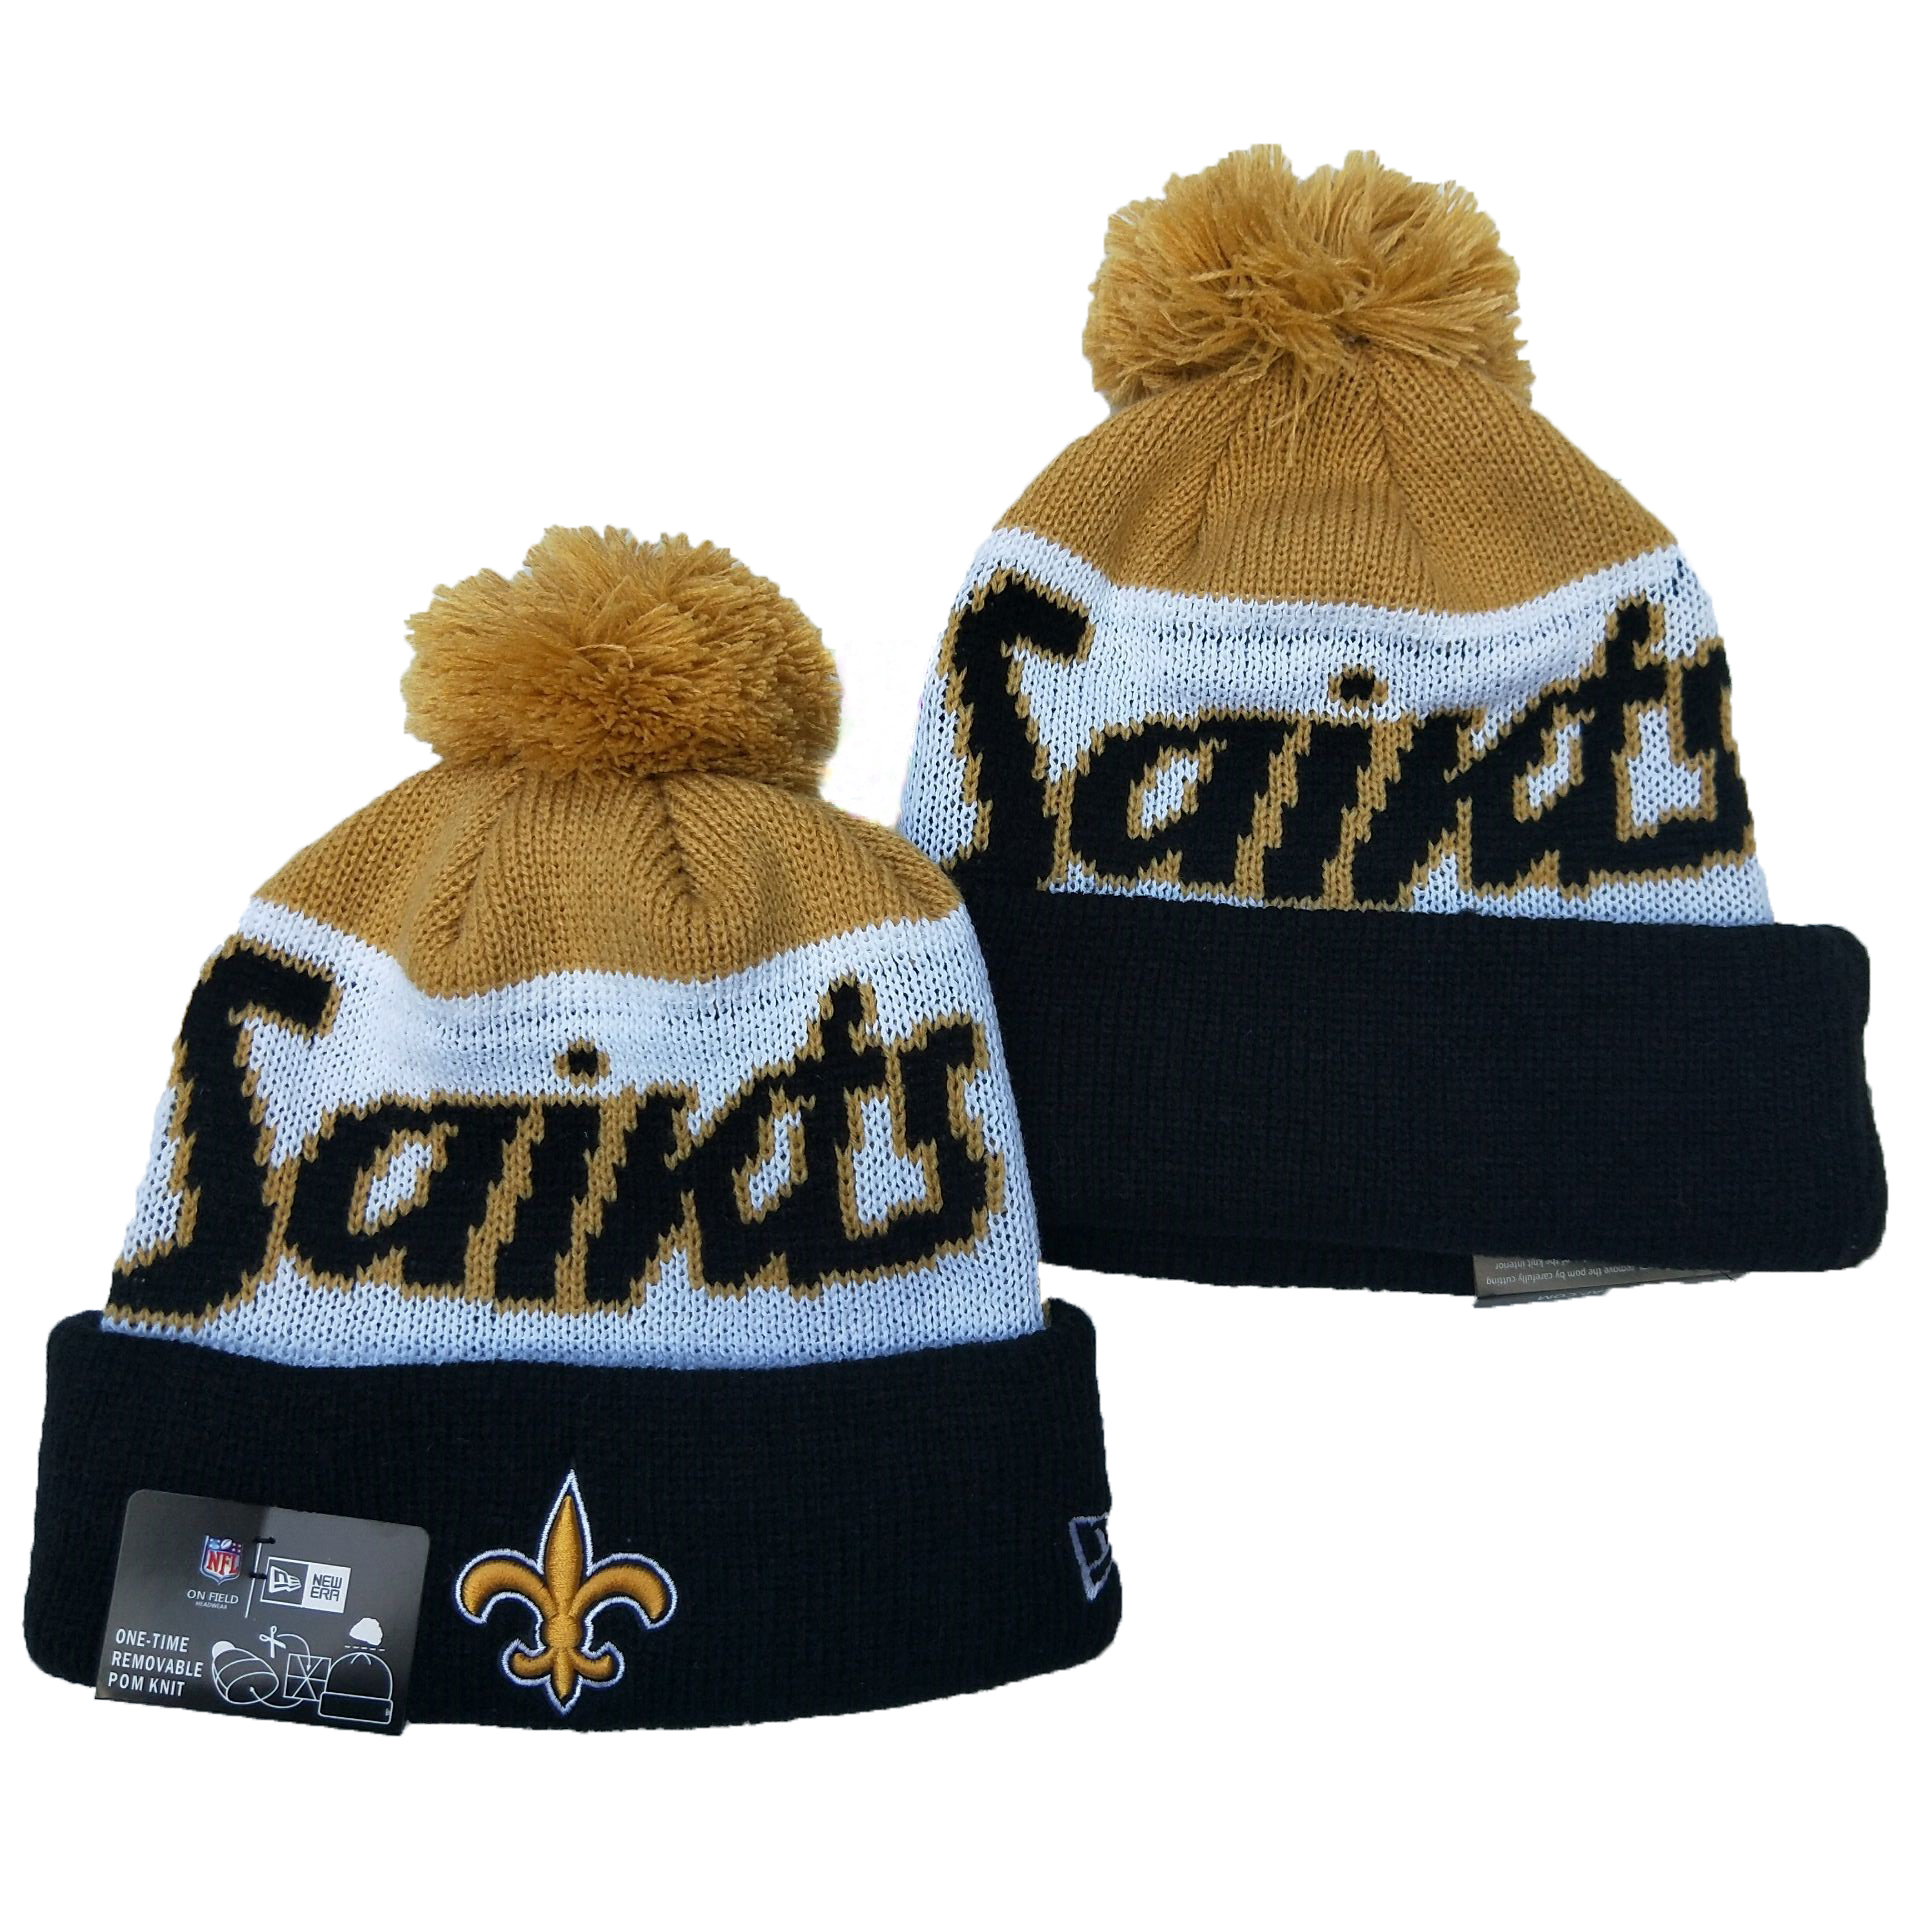 Saints Team Logo Cream White Black Pom Knit Hat YD